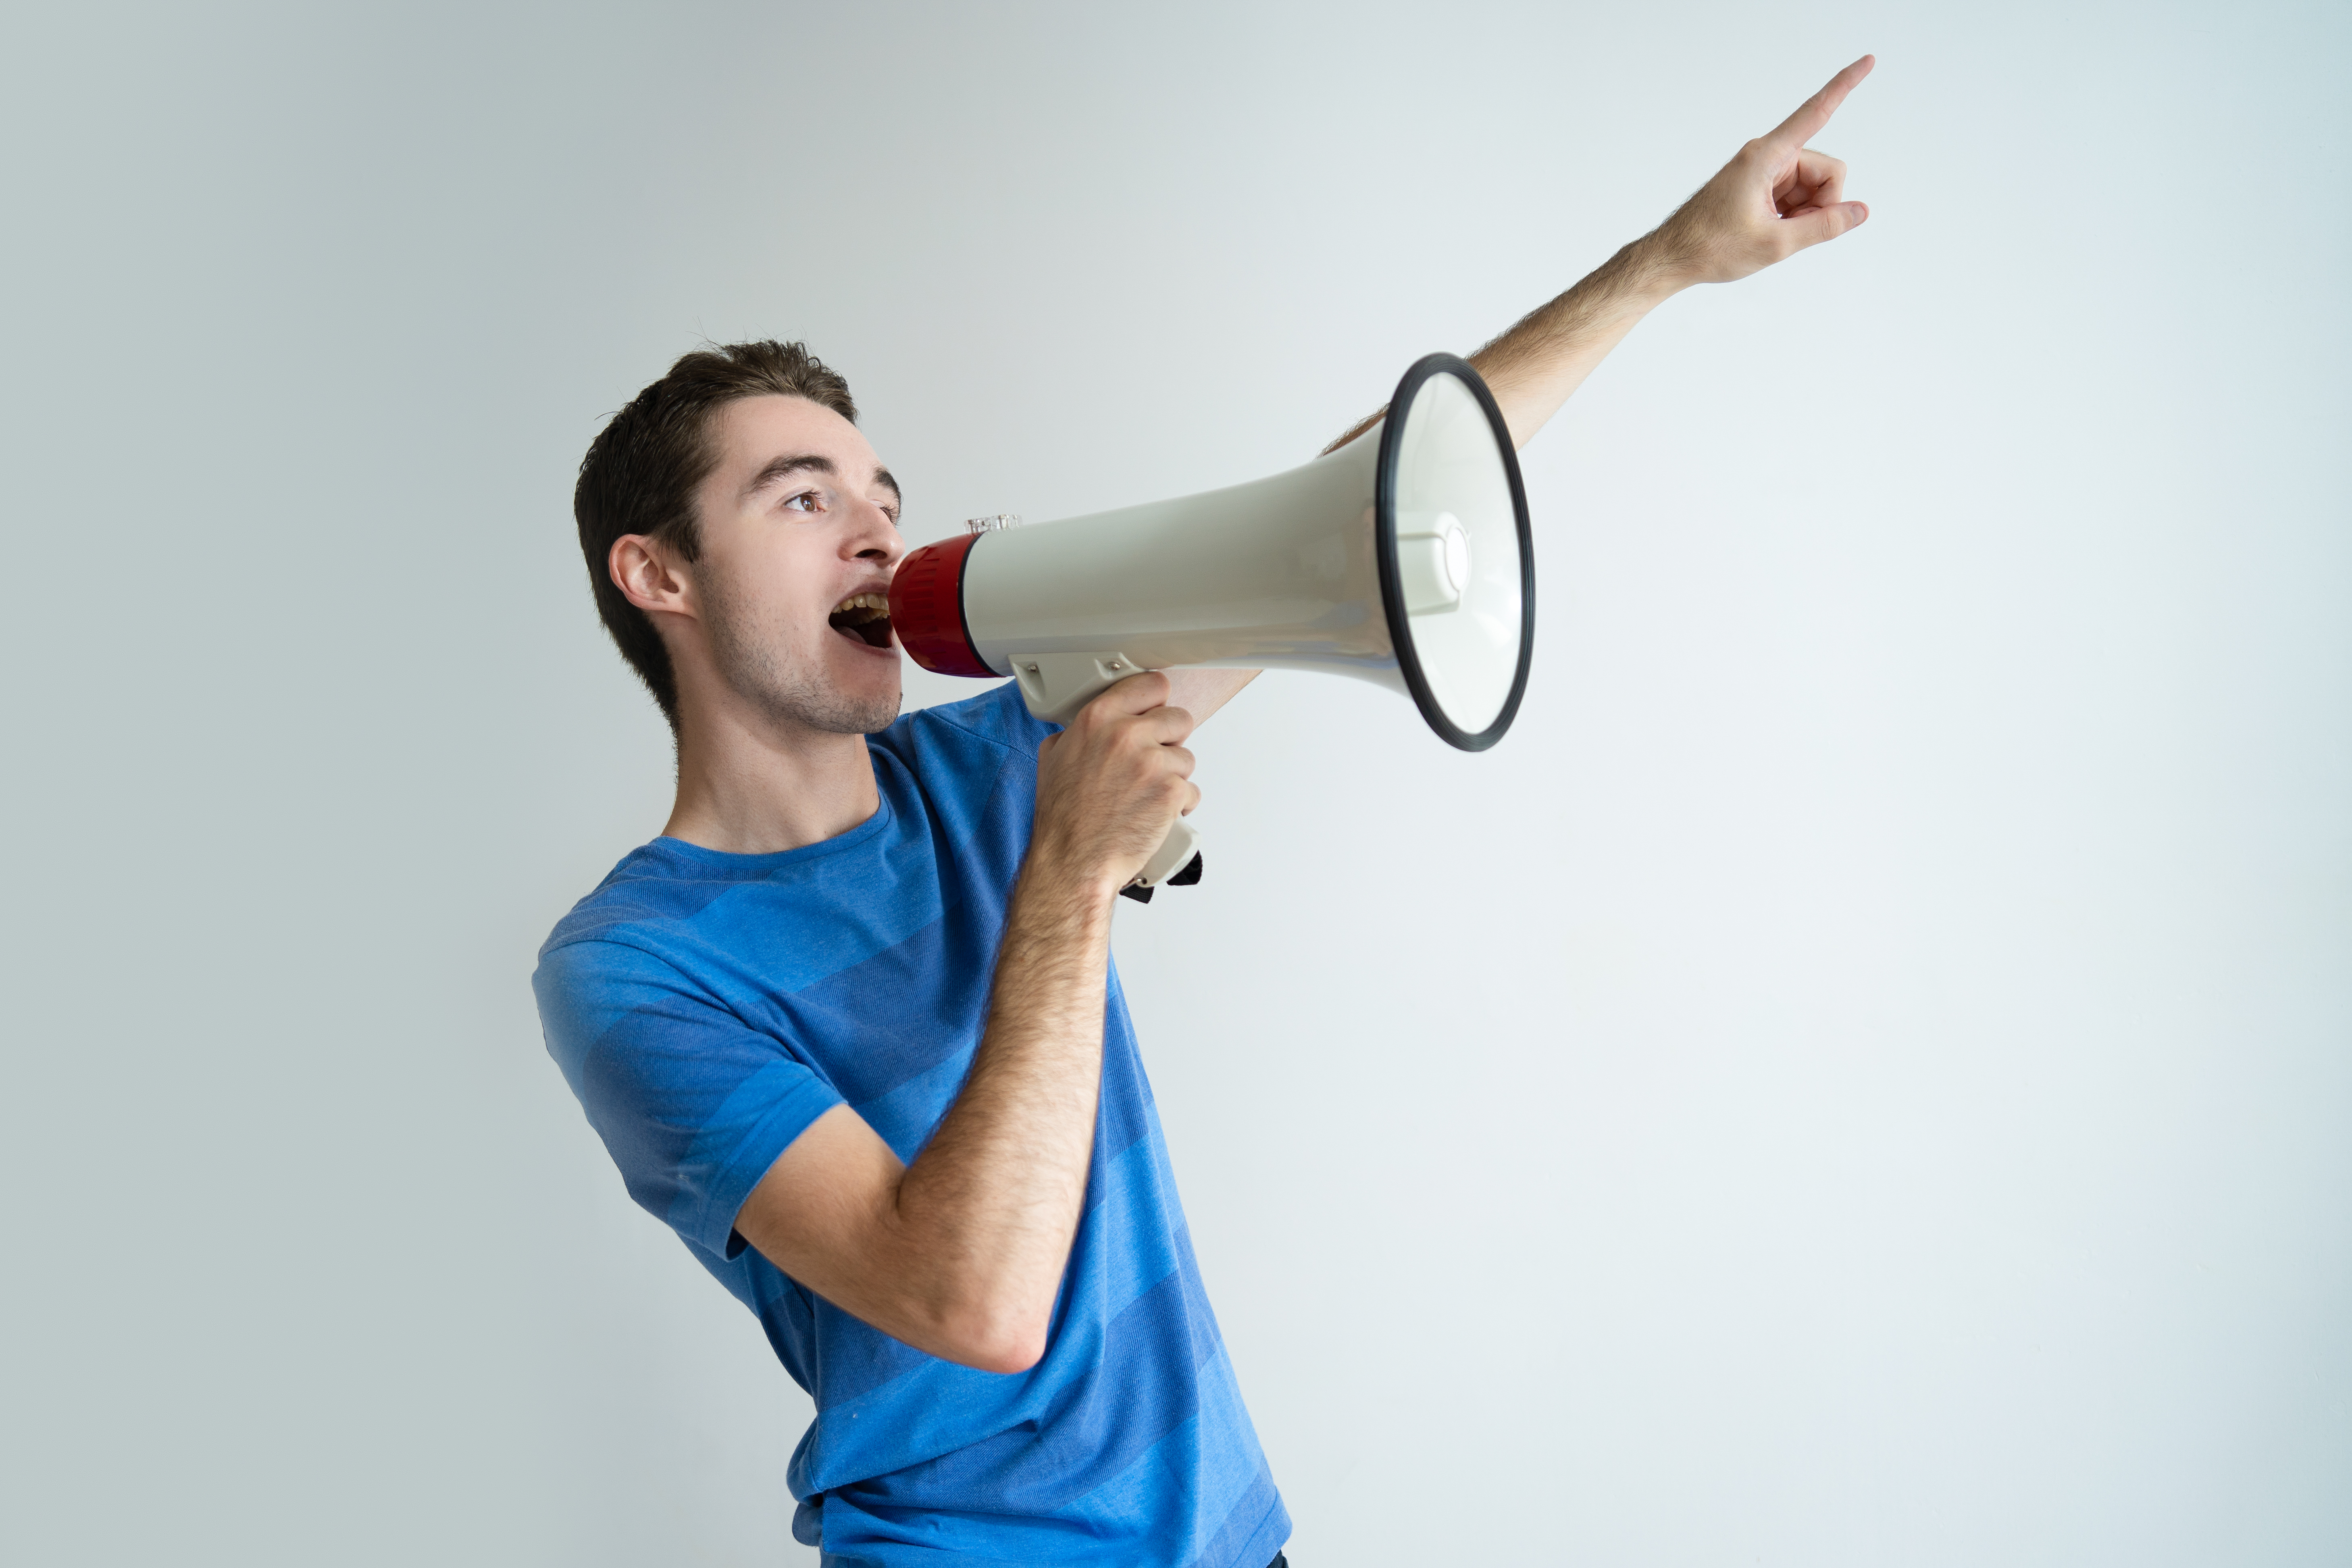 A man speaking into a megaphone